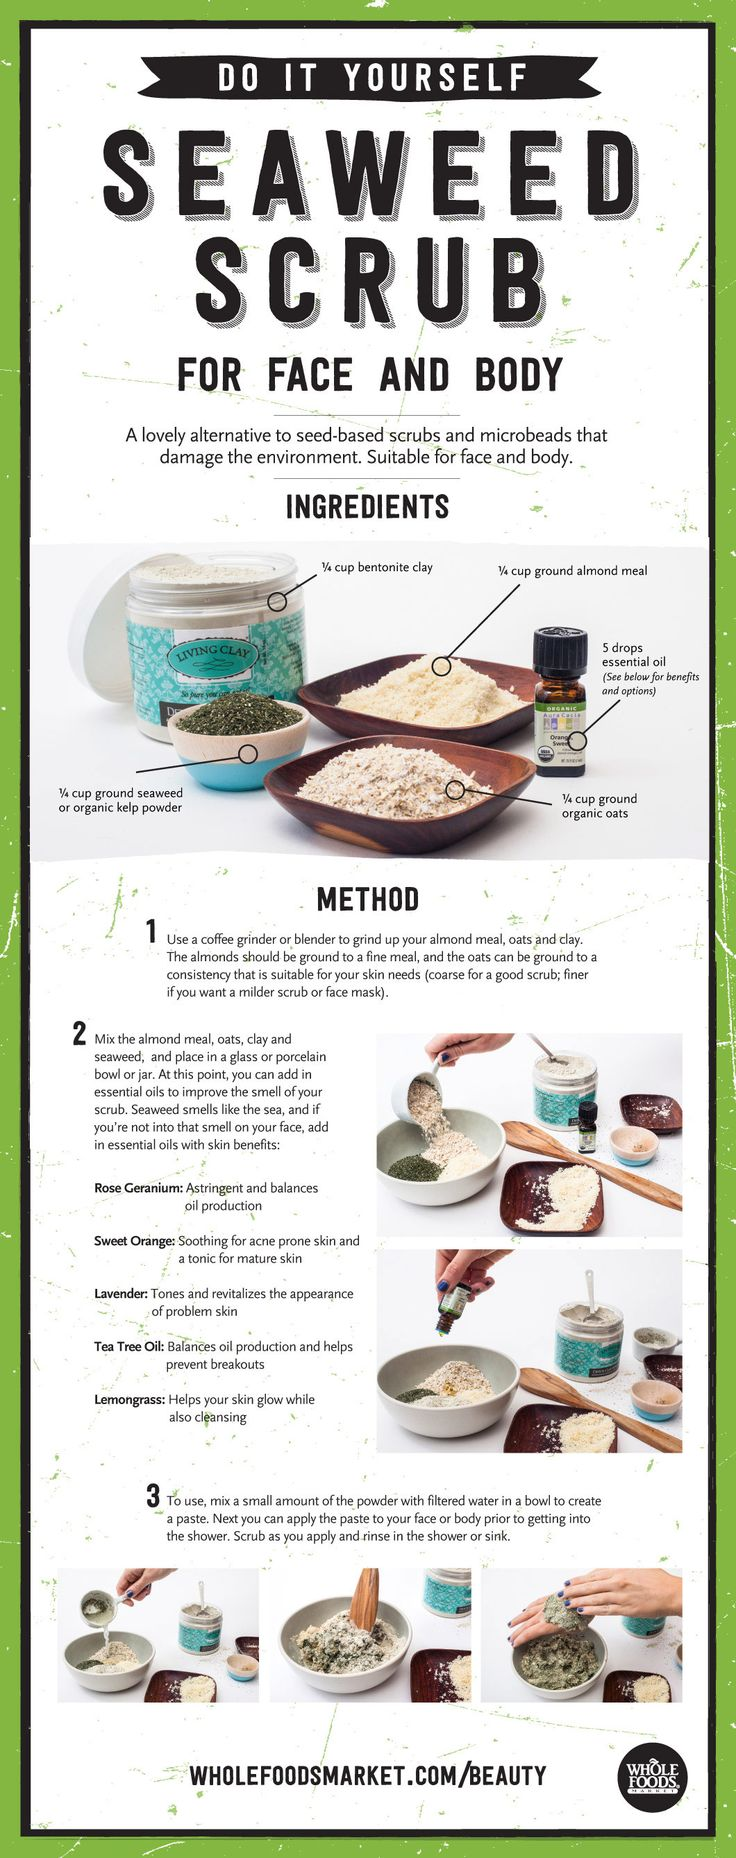 A lovely alternative to seed-based scrubs and environment-damaging microbeads, this scrub is fabulous for face and body. Use a coffee grinder to pulverize almond meal, oats and clay; mix with seaweed powder. Add in essential oils like geranium, rose or sweet orange, if desired, and then water to for...